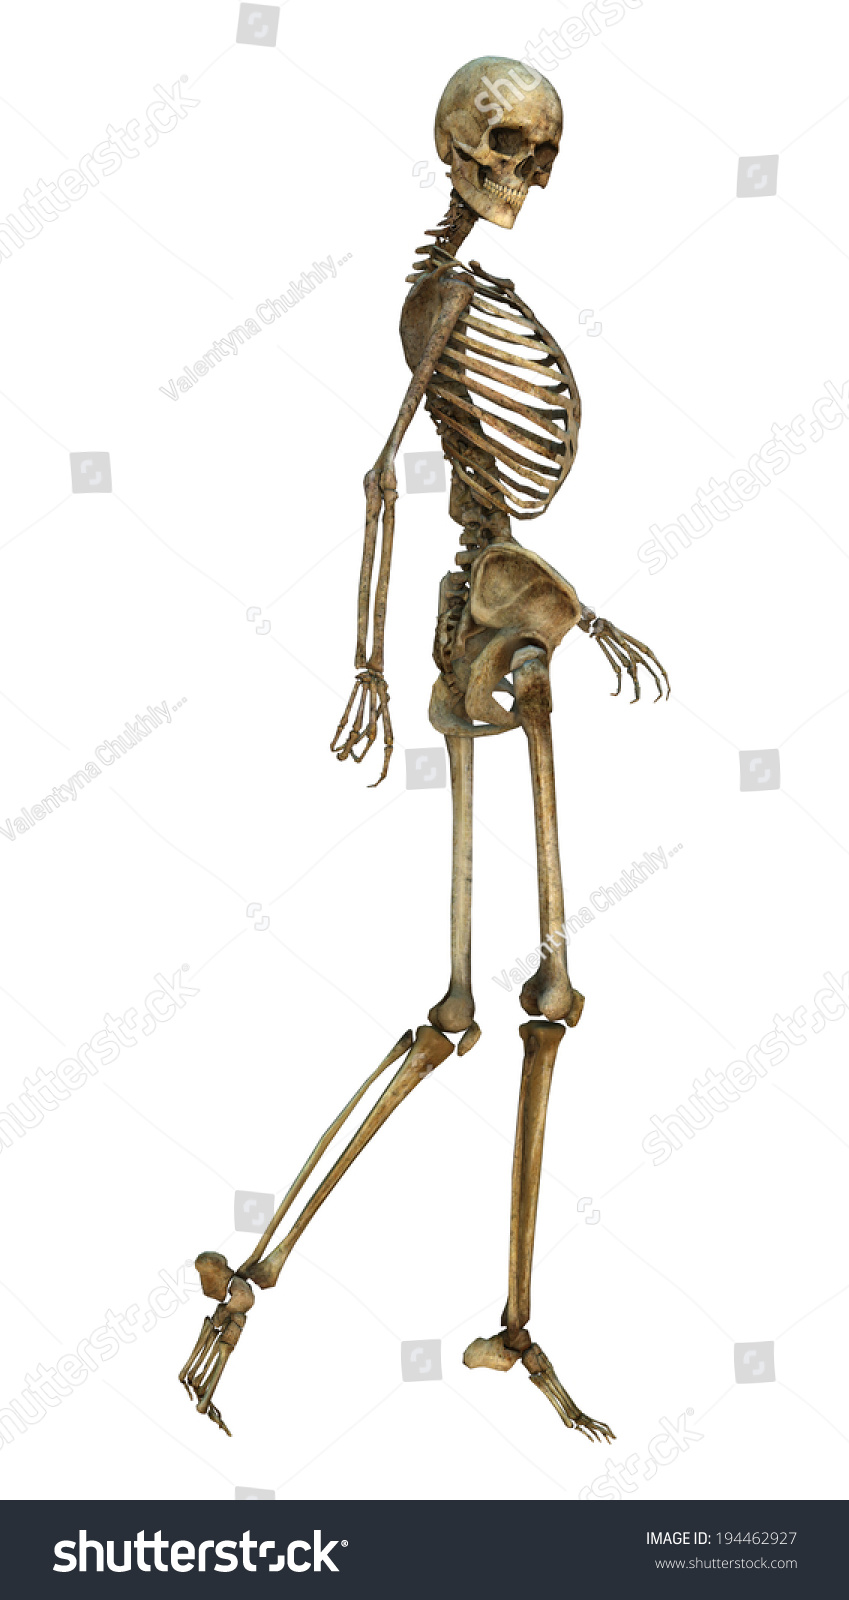 3d digital render old walking human stock illustration 194462927, Skeleton